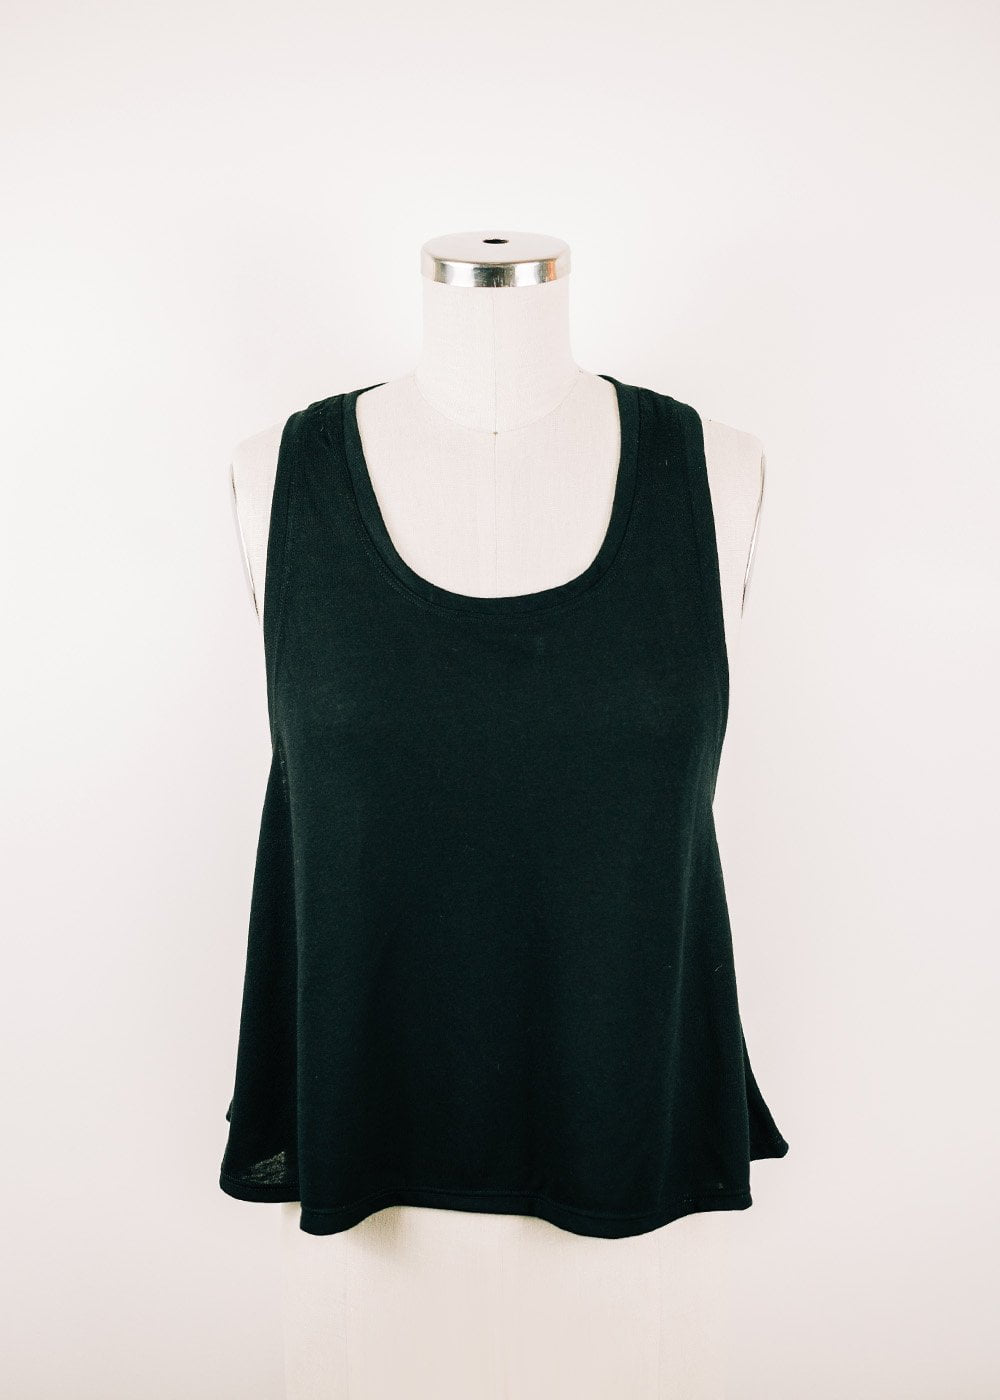 Oona Cropped Racerback Tank - 2 colors